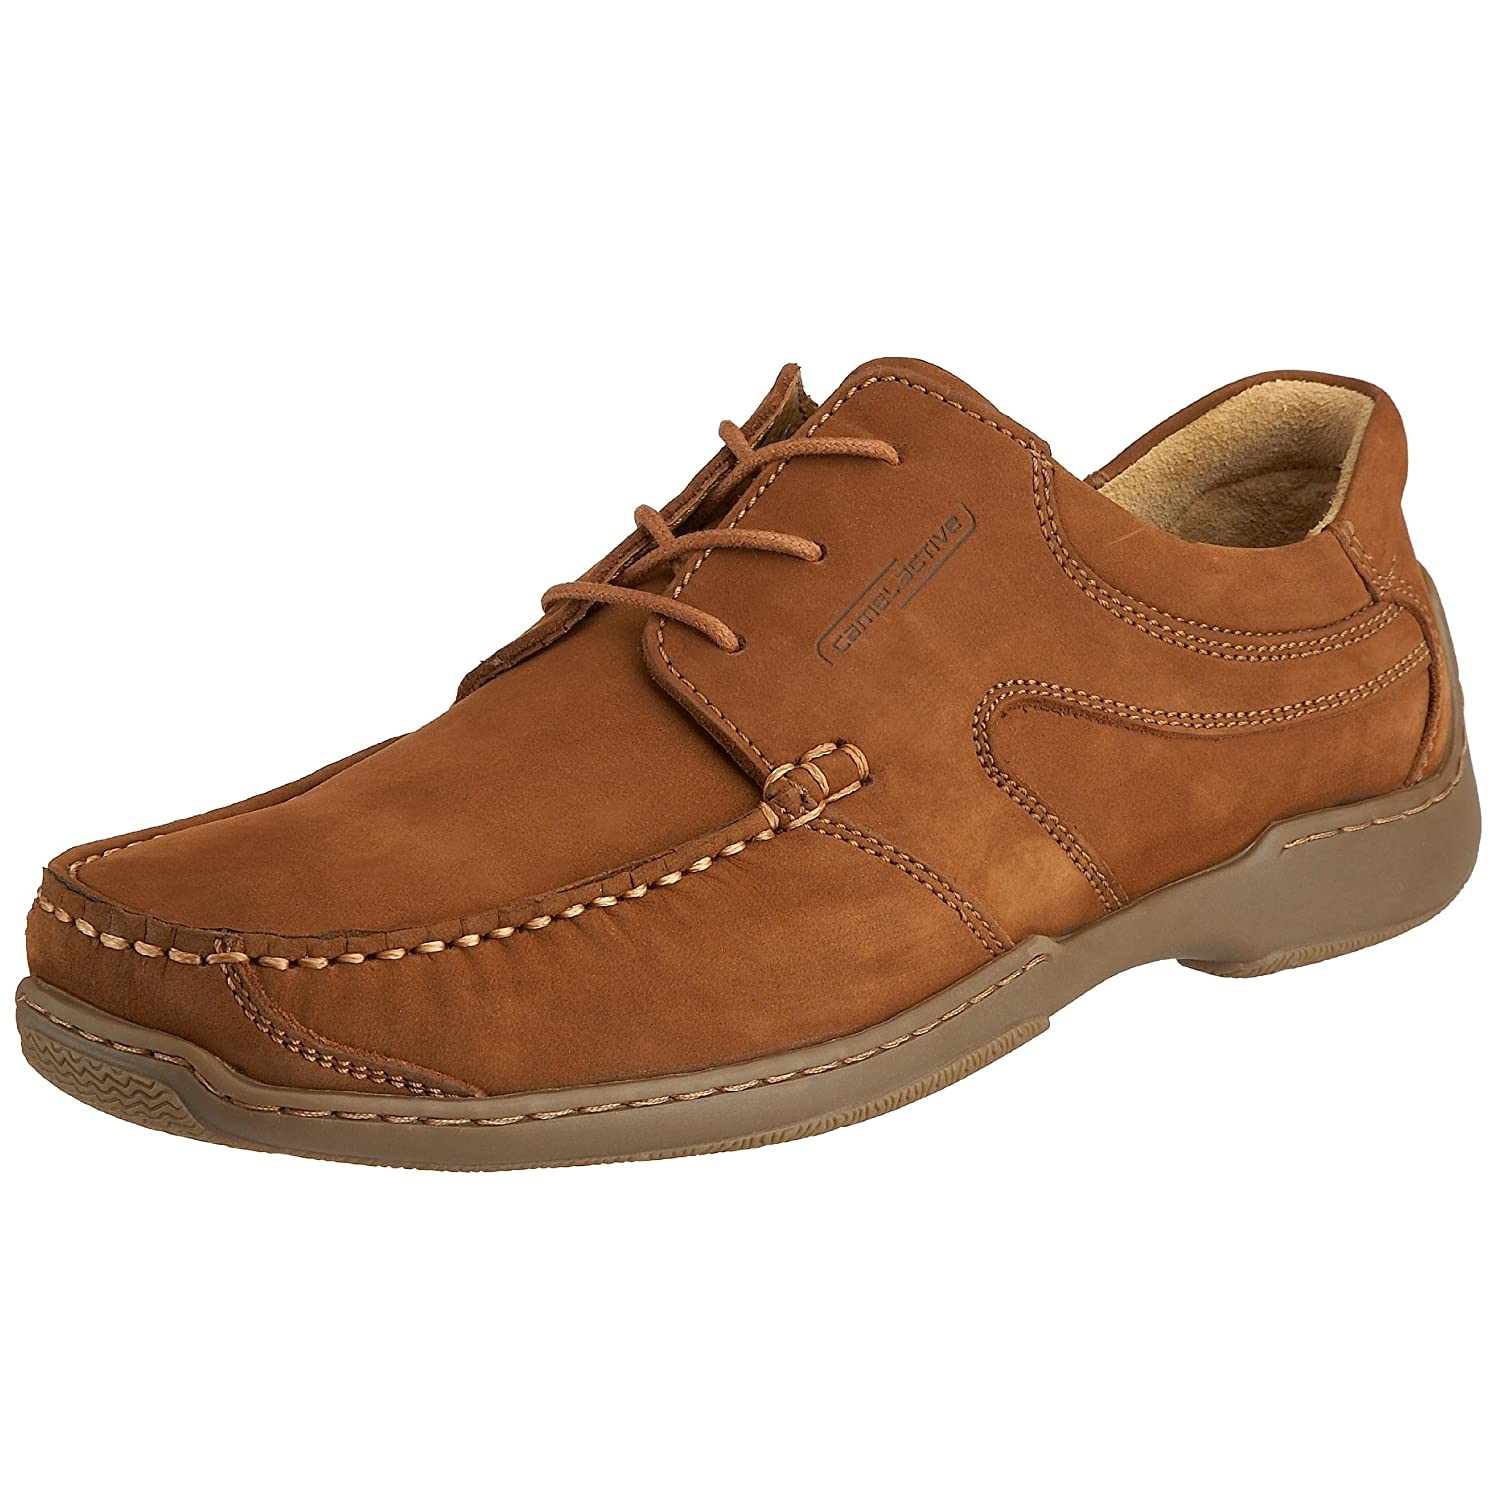 6113830a8e6f camel active Men's Madrid Mocasin Brandy Nubuck 171.11.01 8 UK ...